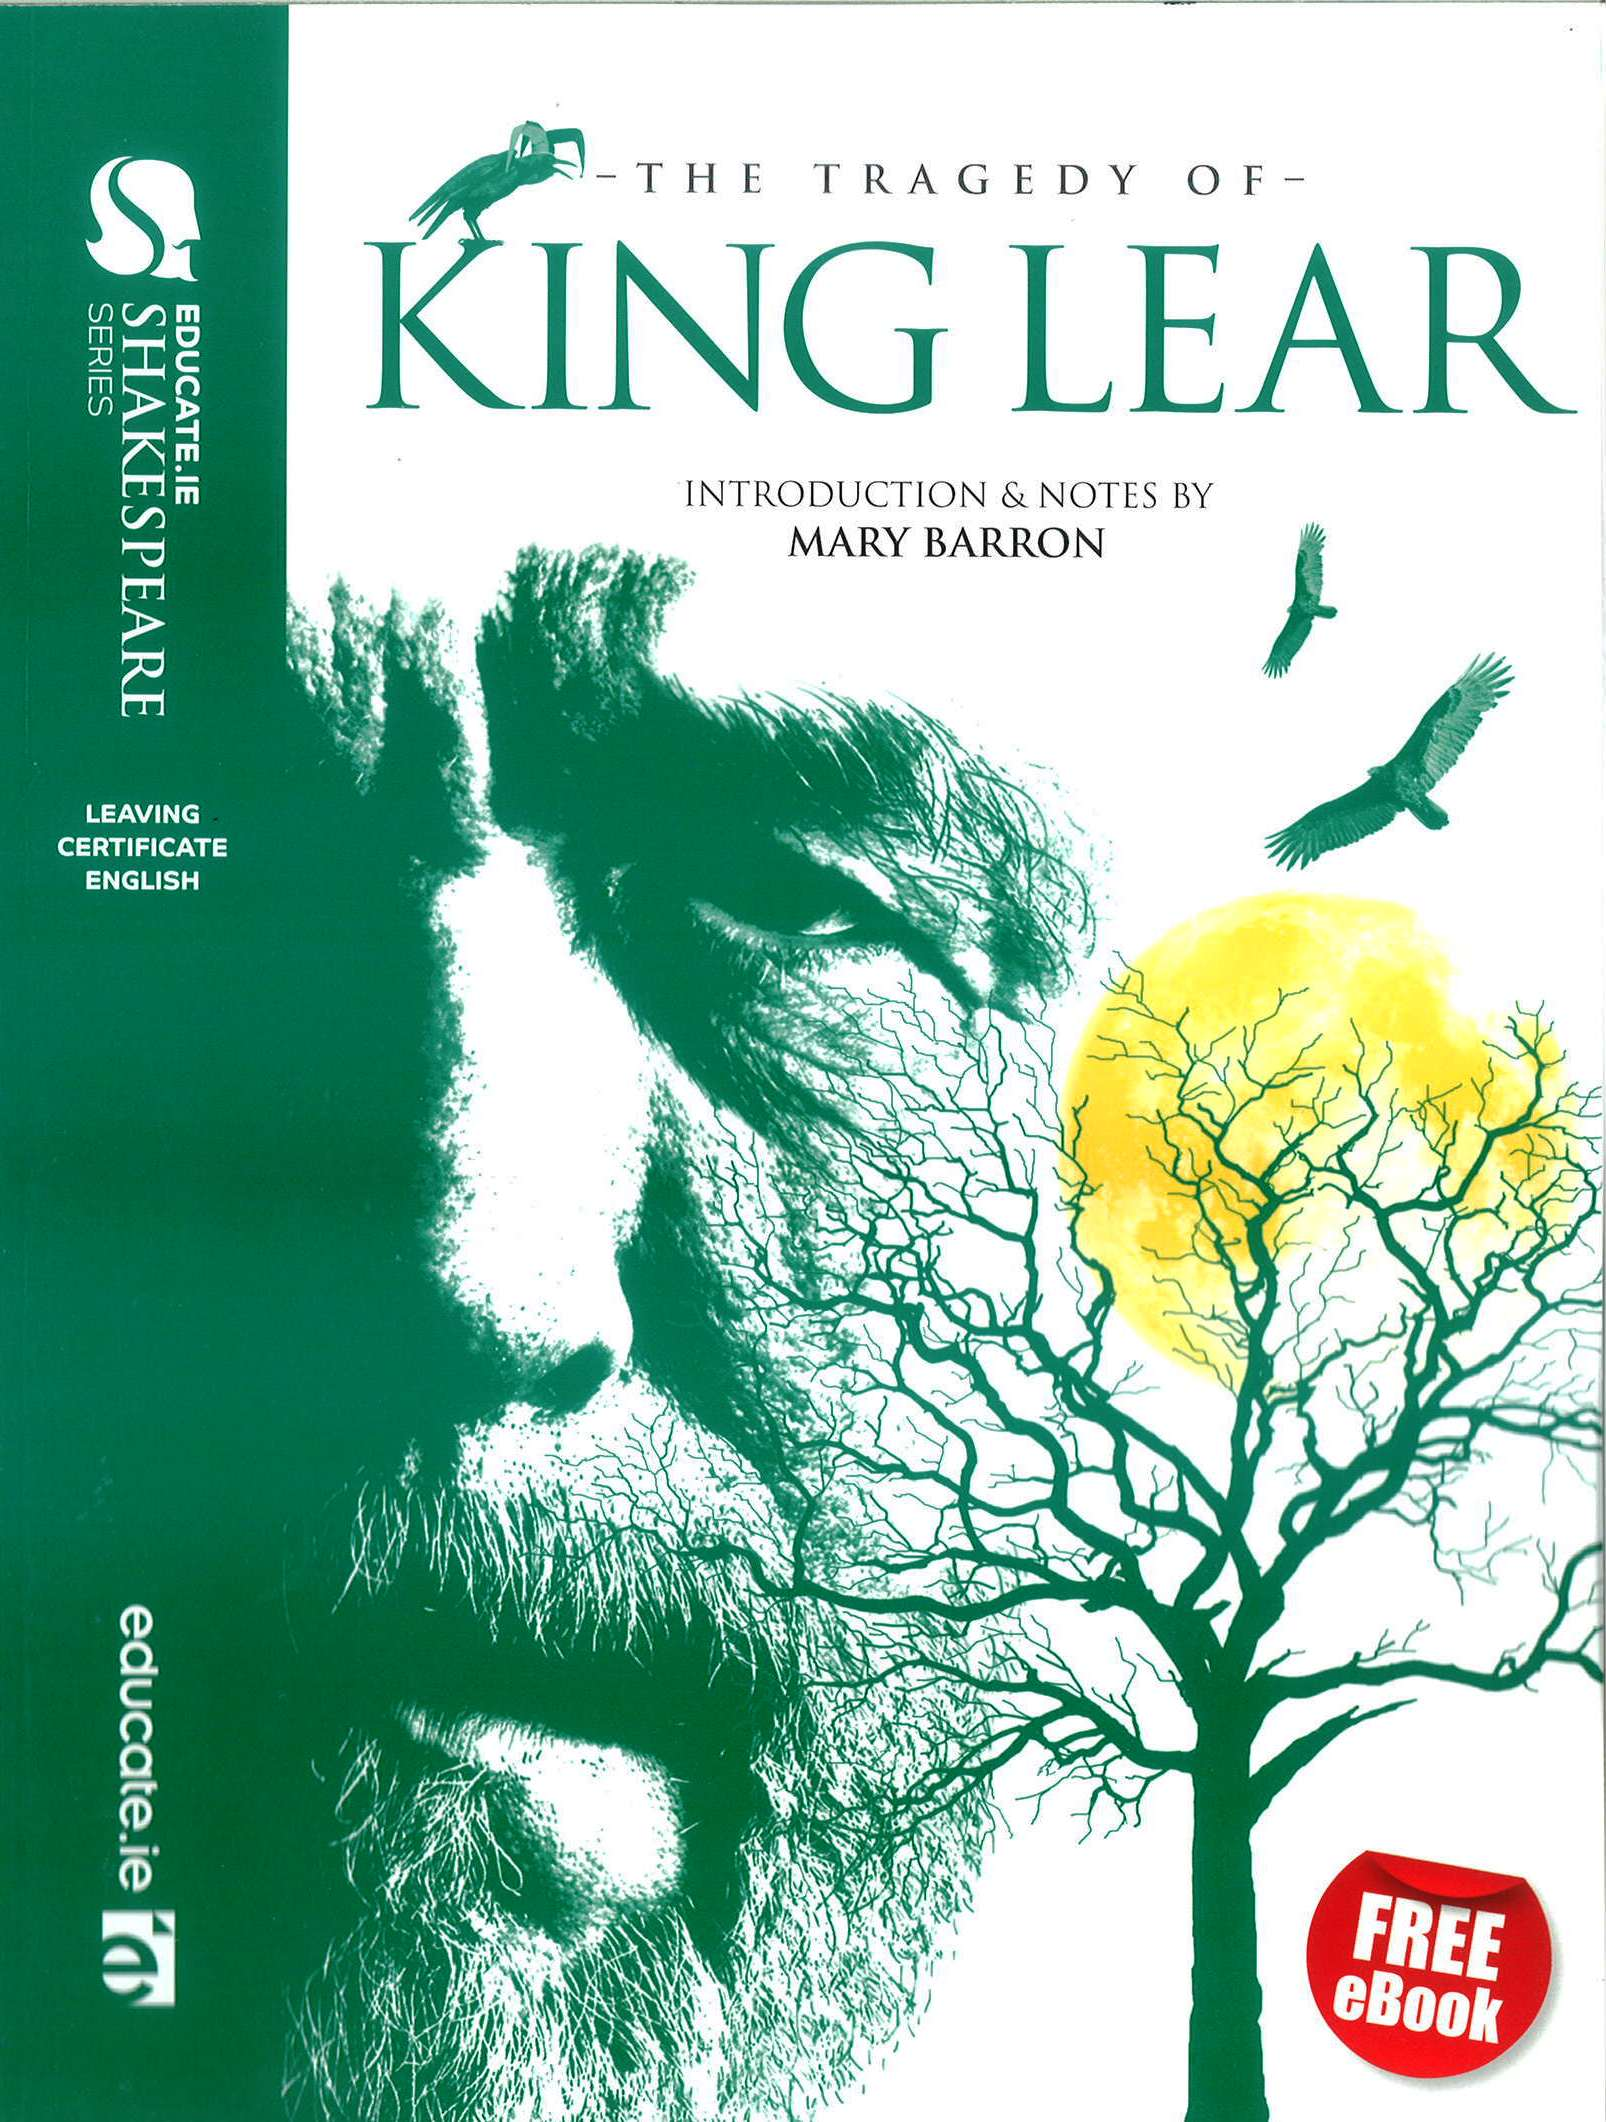 King lear leaving certificate english educate shakespeare king lear leaving certificate english educate shakespeare series includes free ebook sciox Gallery